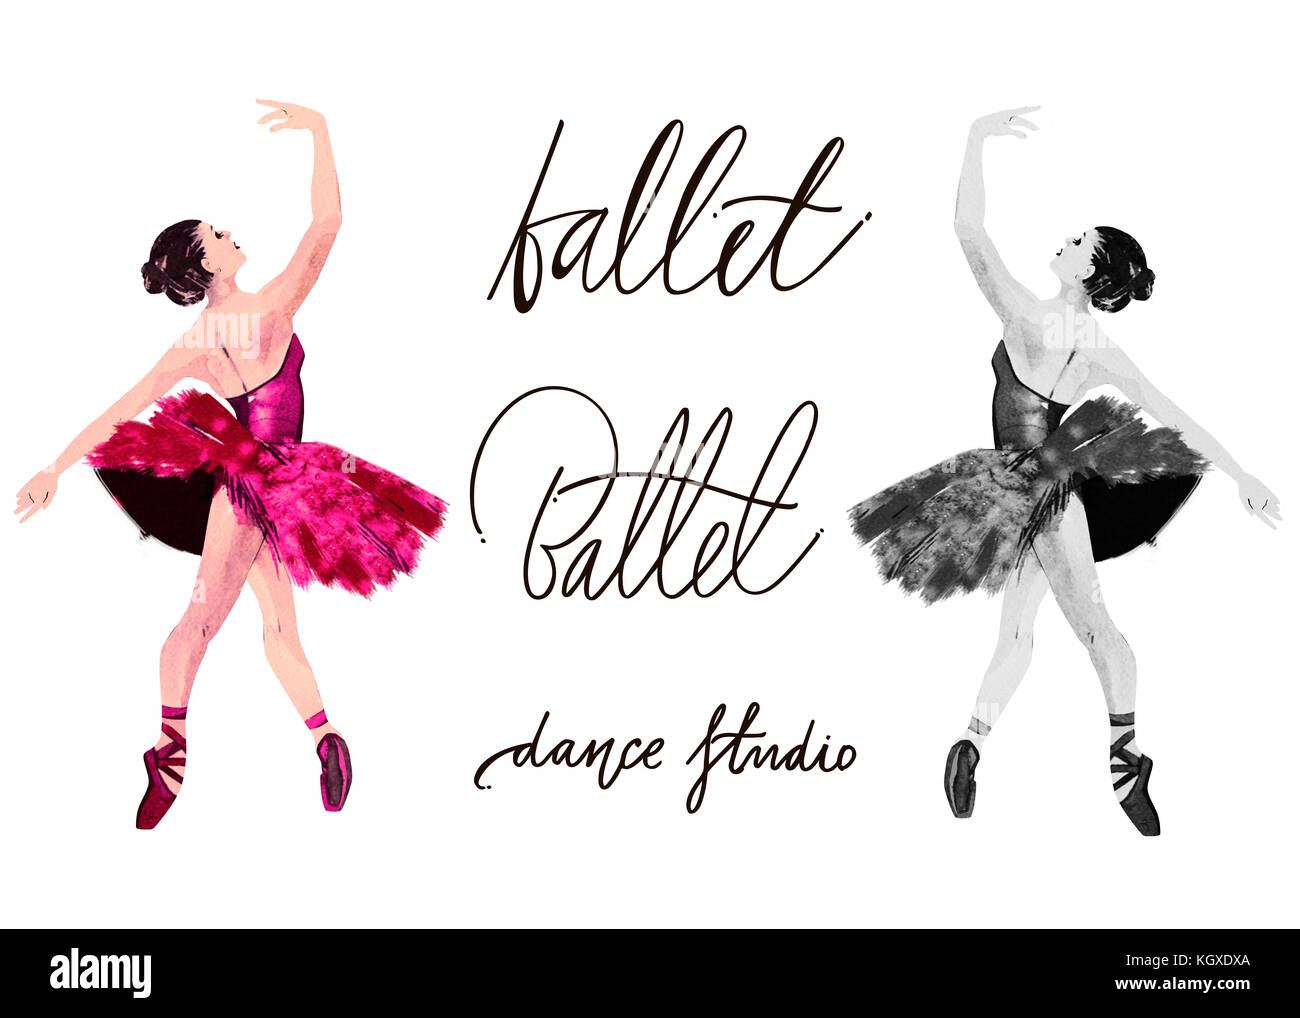 Ballet Cartoon High Resolution Stock Photography And Images Alamy